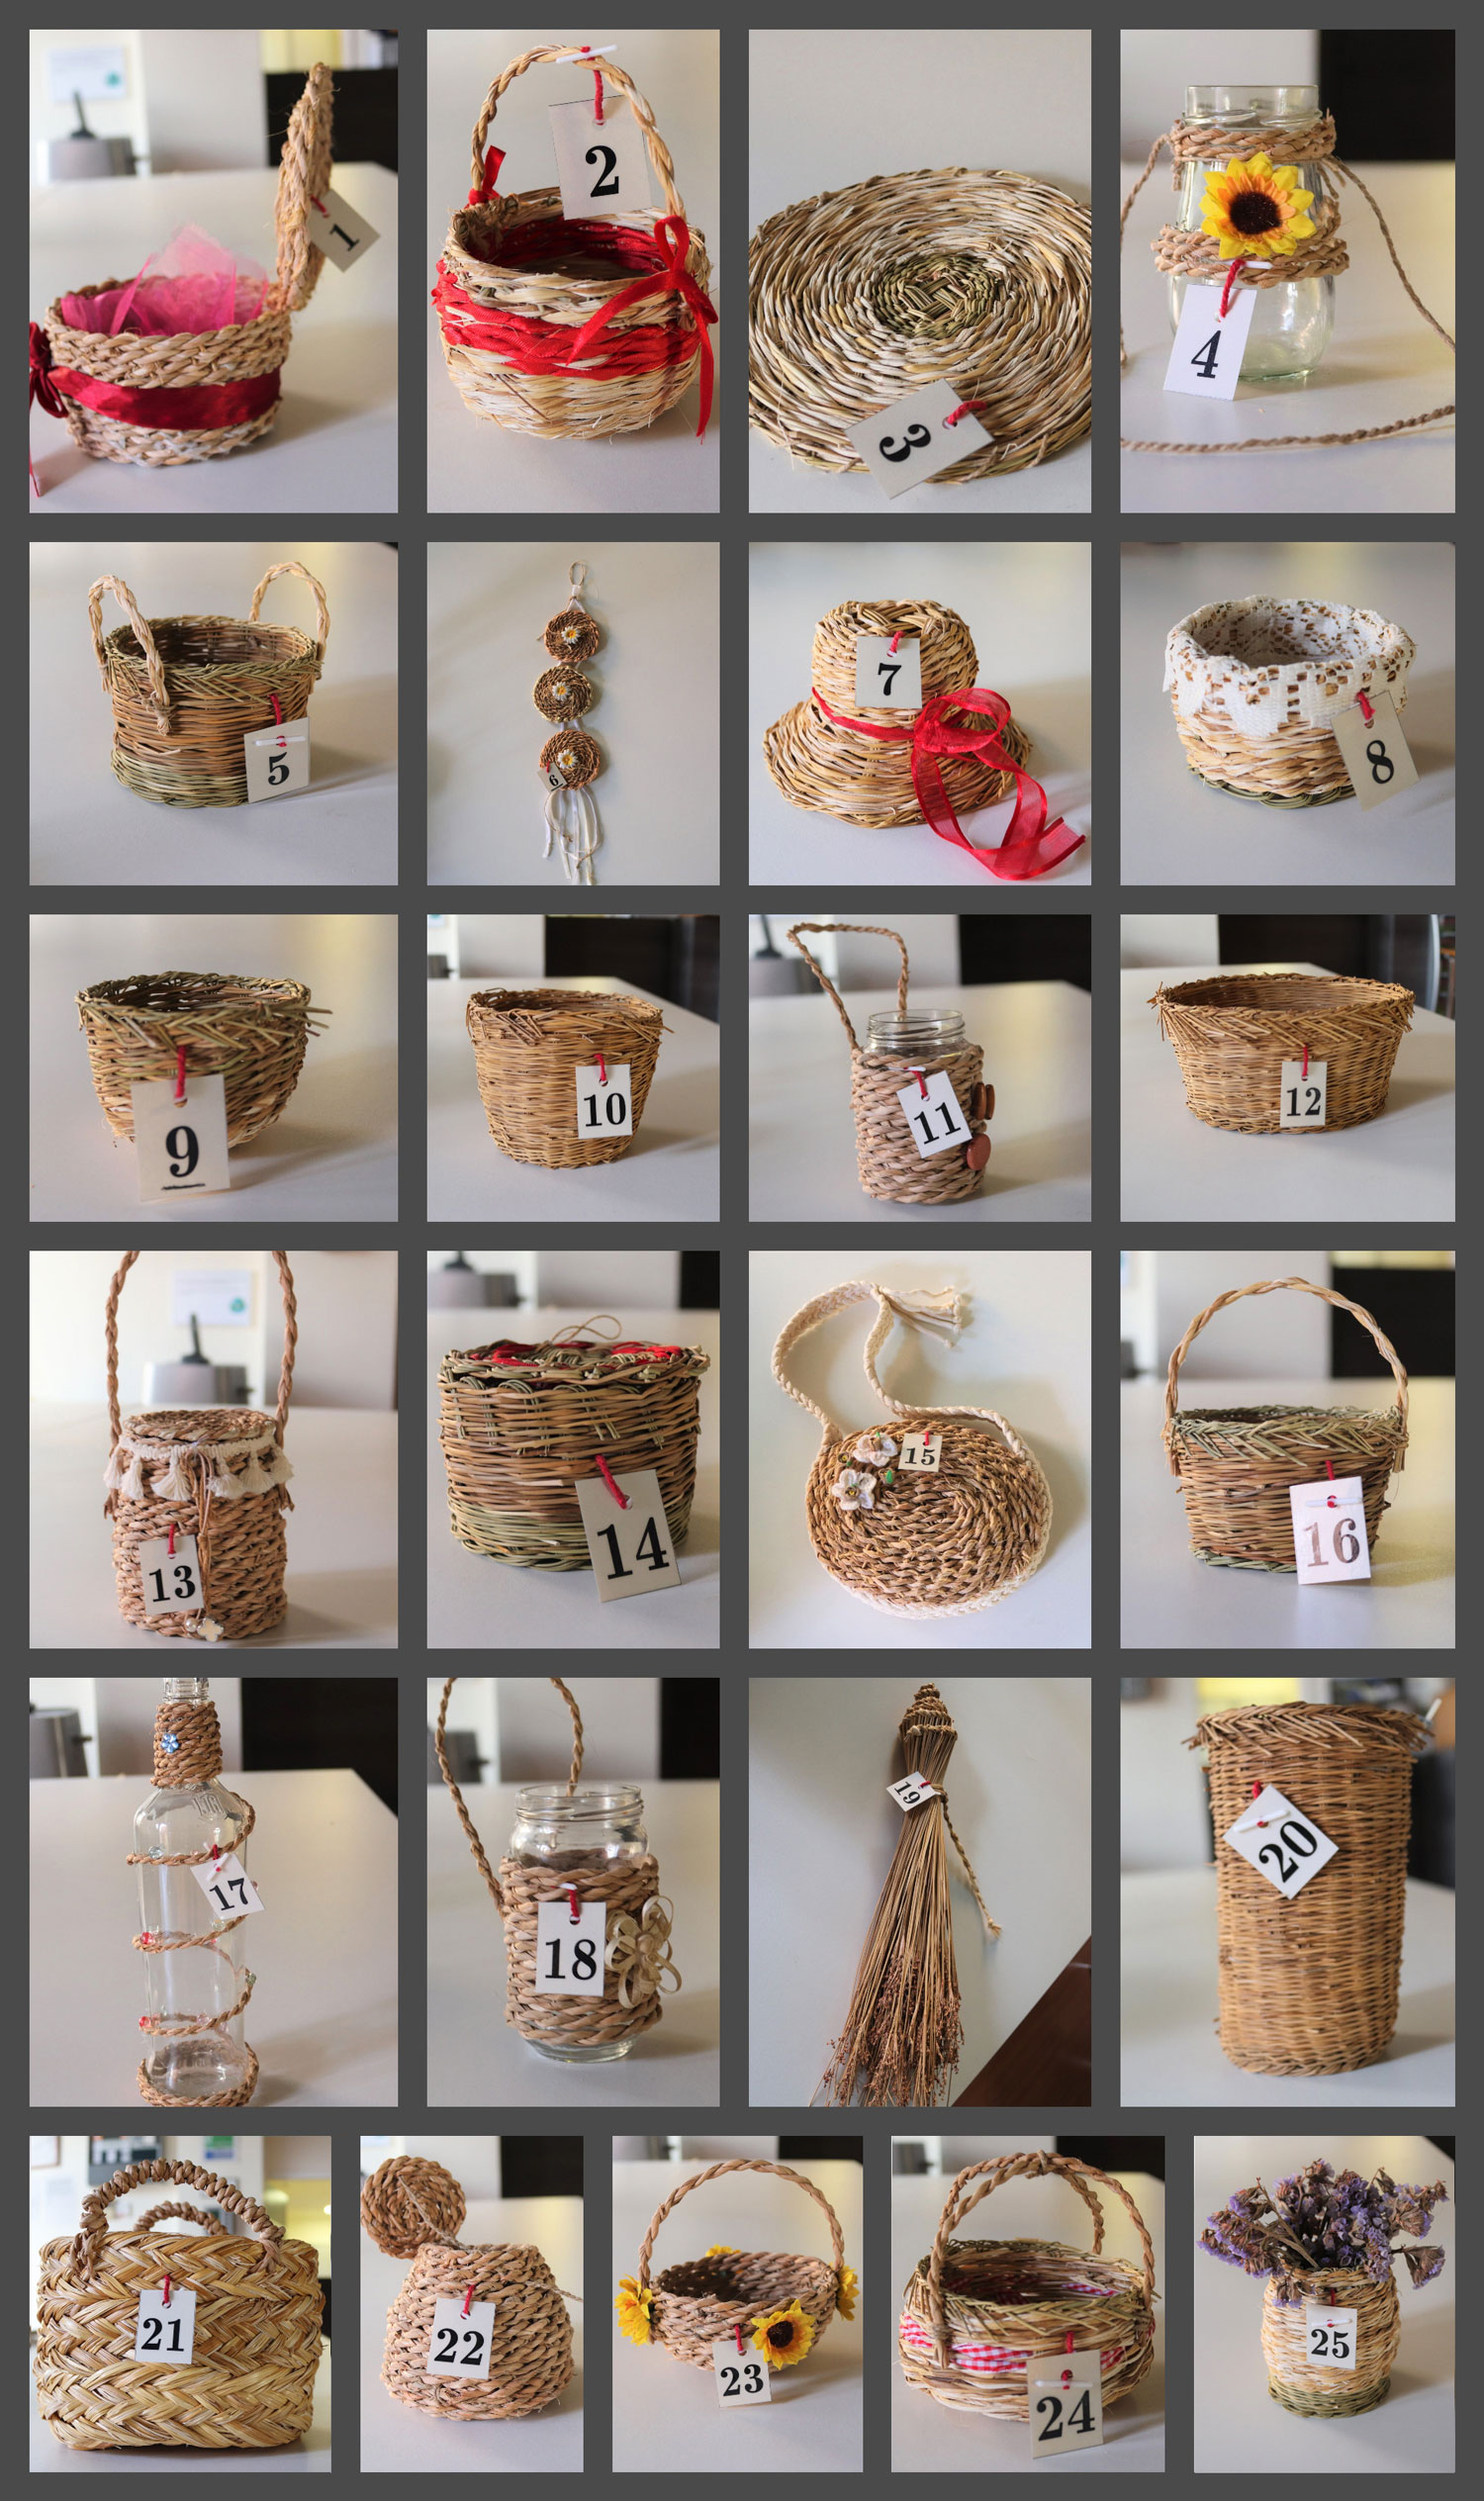 Basketry_items